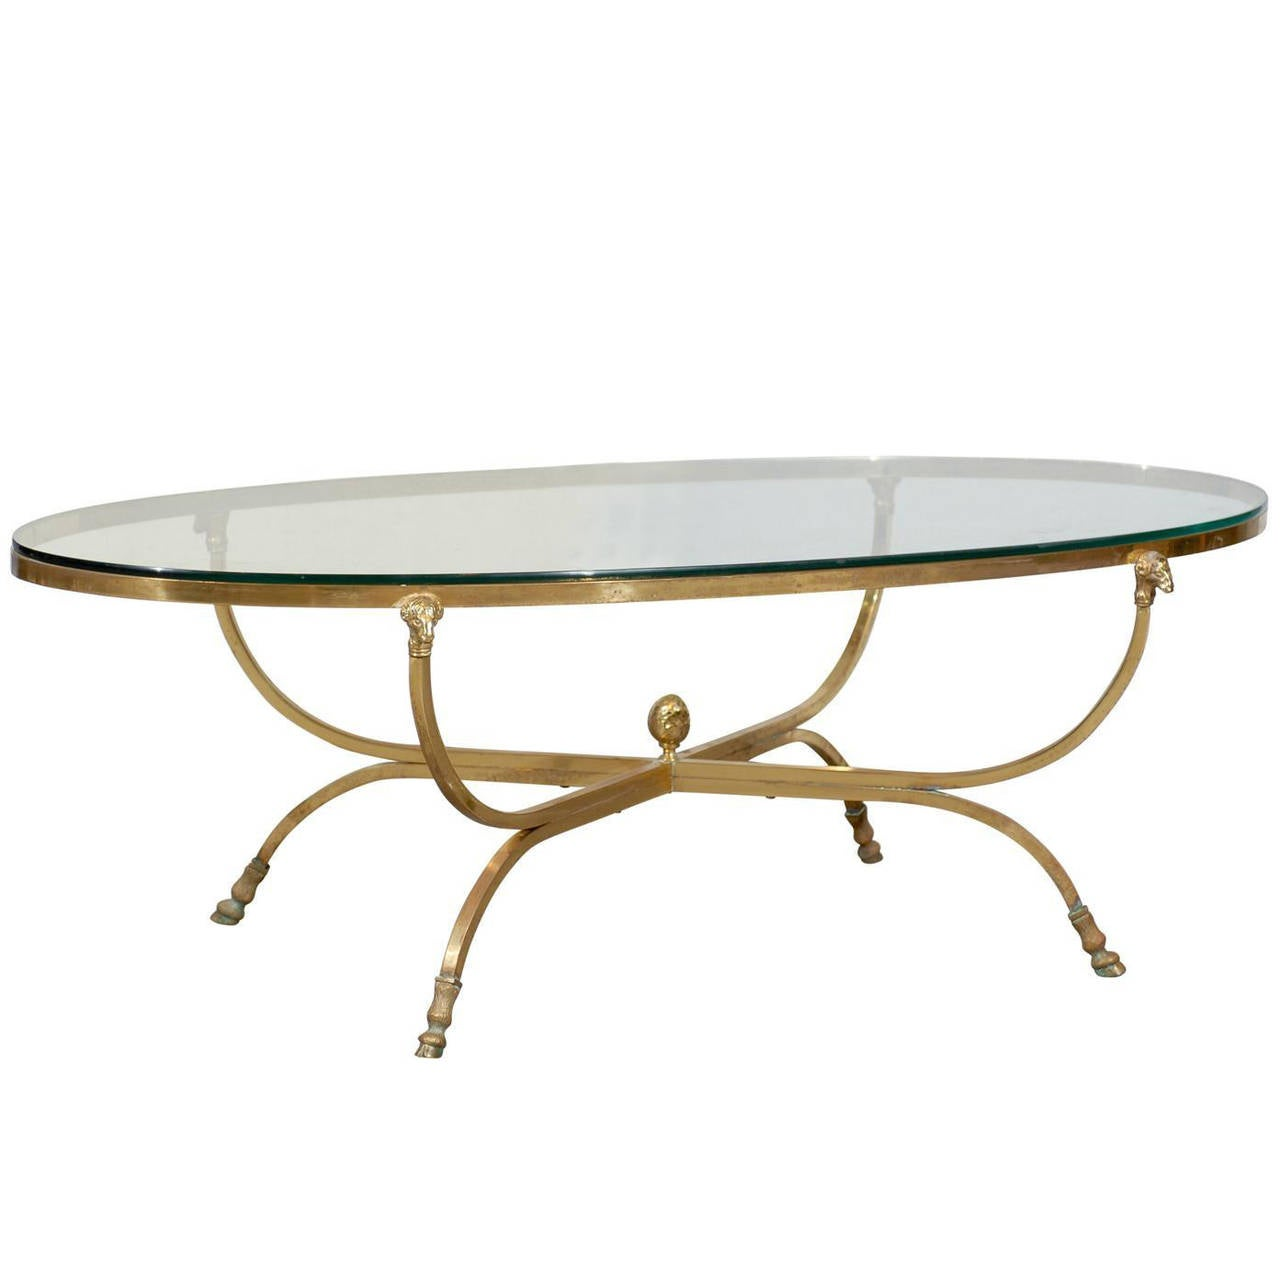 Oval brass and glass coffee table with ram 39 s heads at 1stdibs for Oval glass coffee table